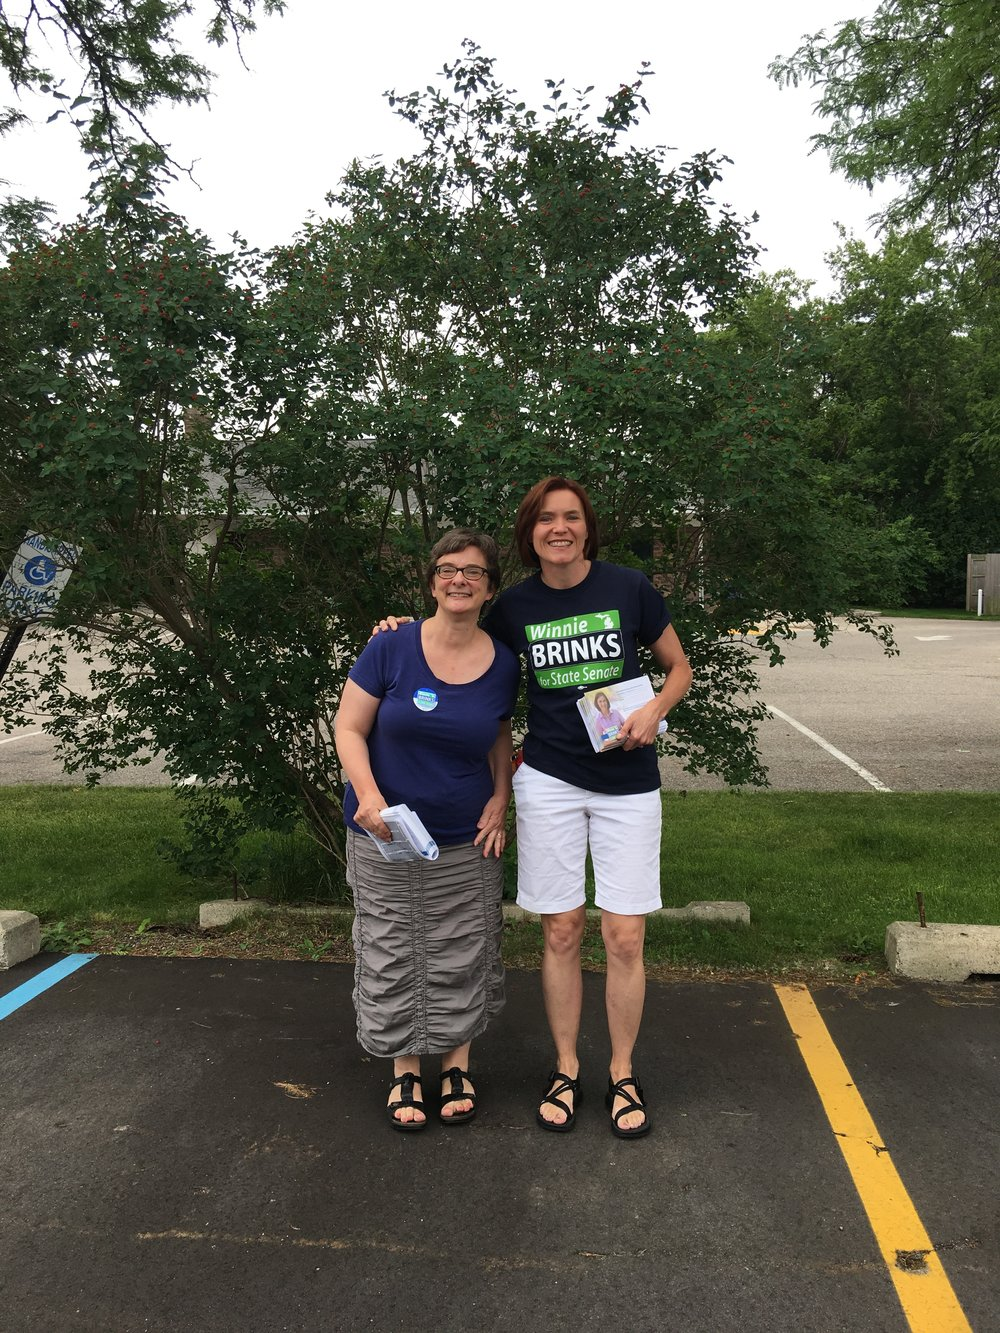 Canvassing with candidate Winnie Brinks